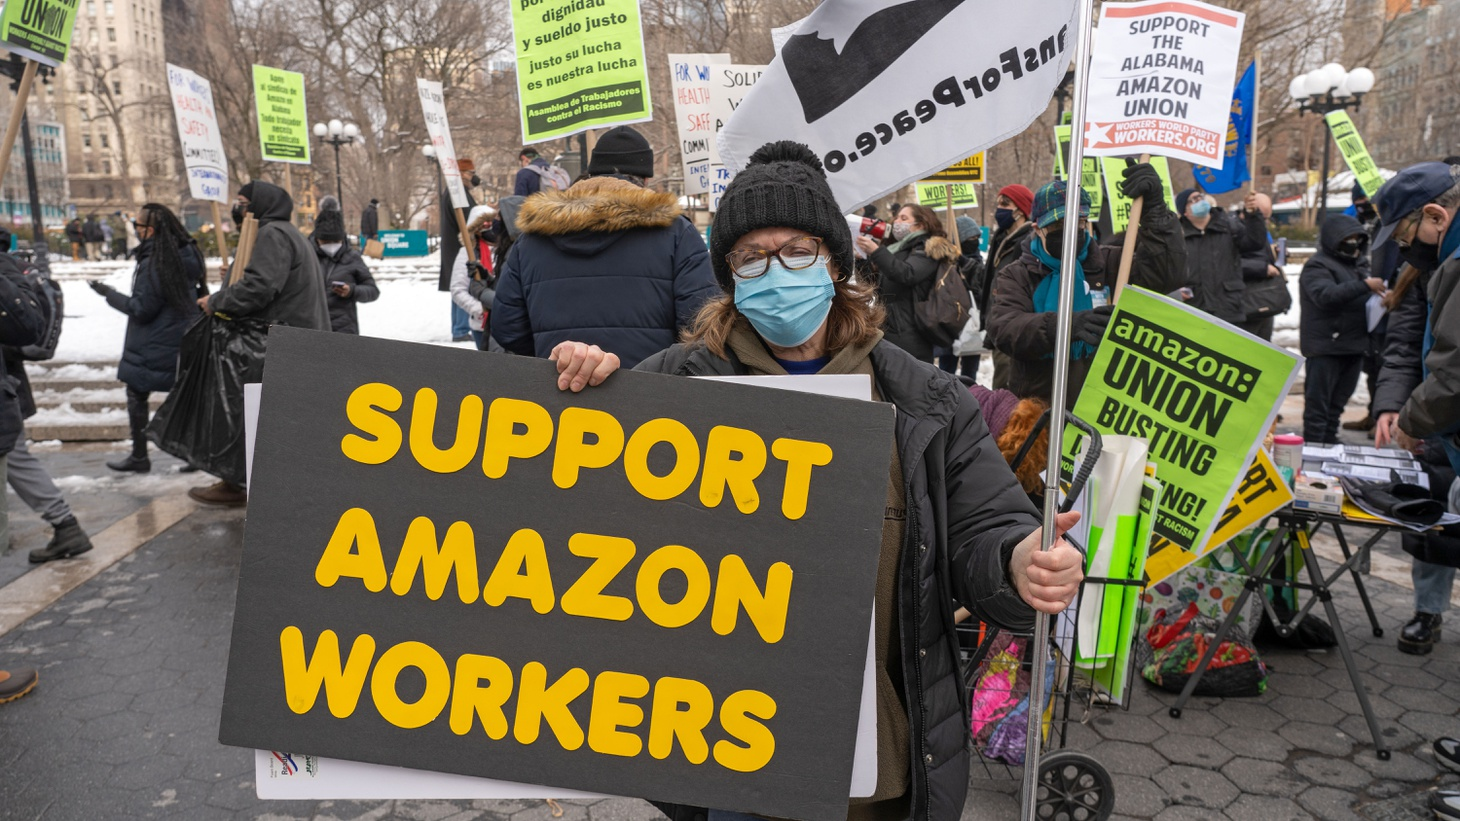 Protestors in New York City hold signs and march on a picket line across from Amazon's Whole Foods Market — in solidarity with the Amazon workers in Bessemer, Alabama who were trying to unionize, February 20, 2021.